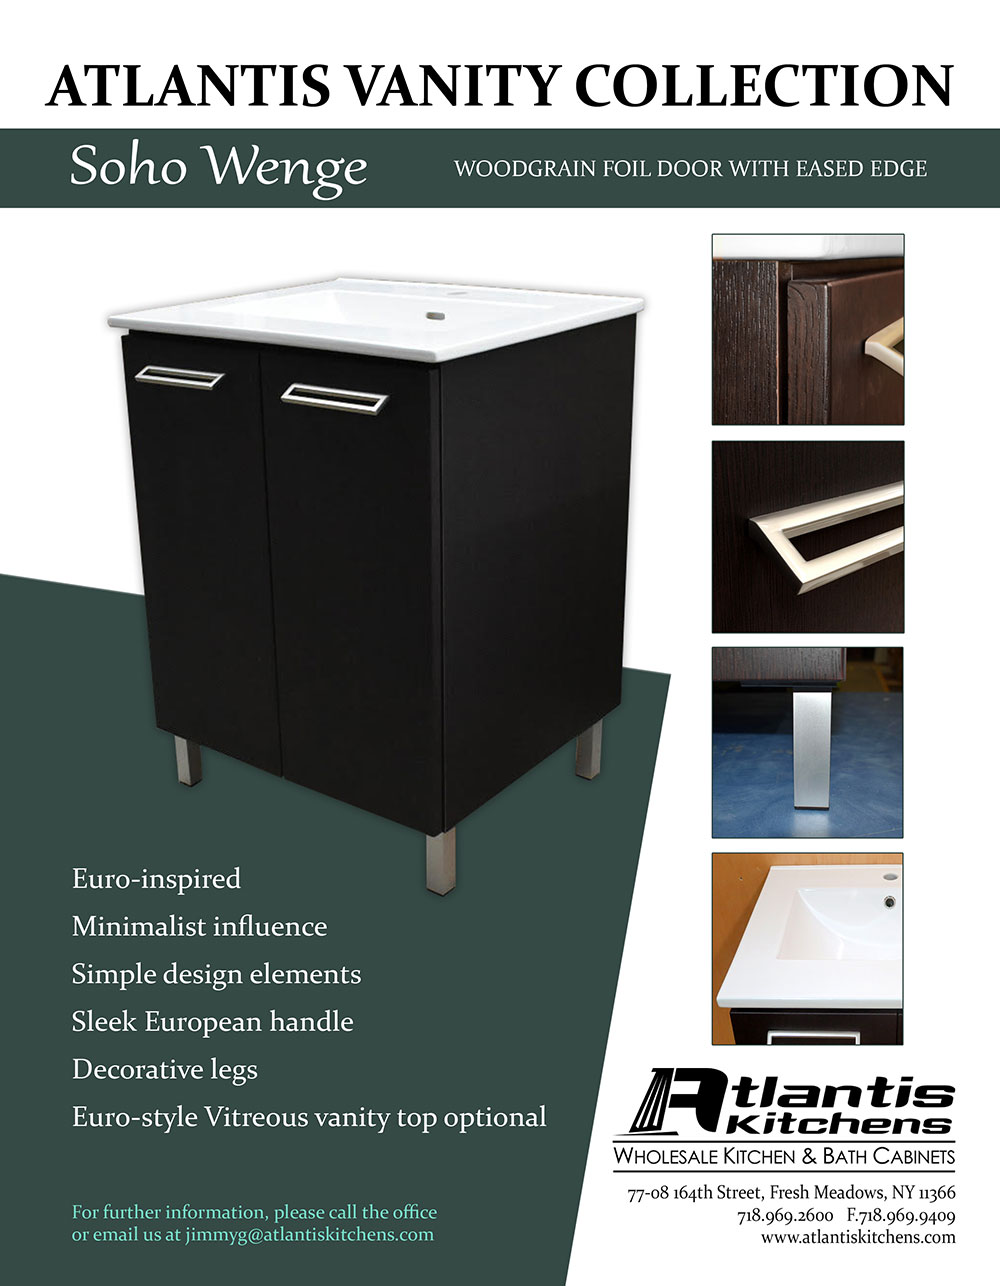 Atlantis Vanity Collection Soho Wenge